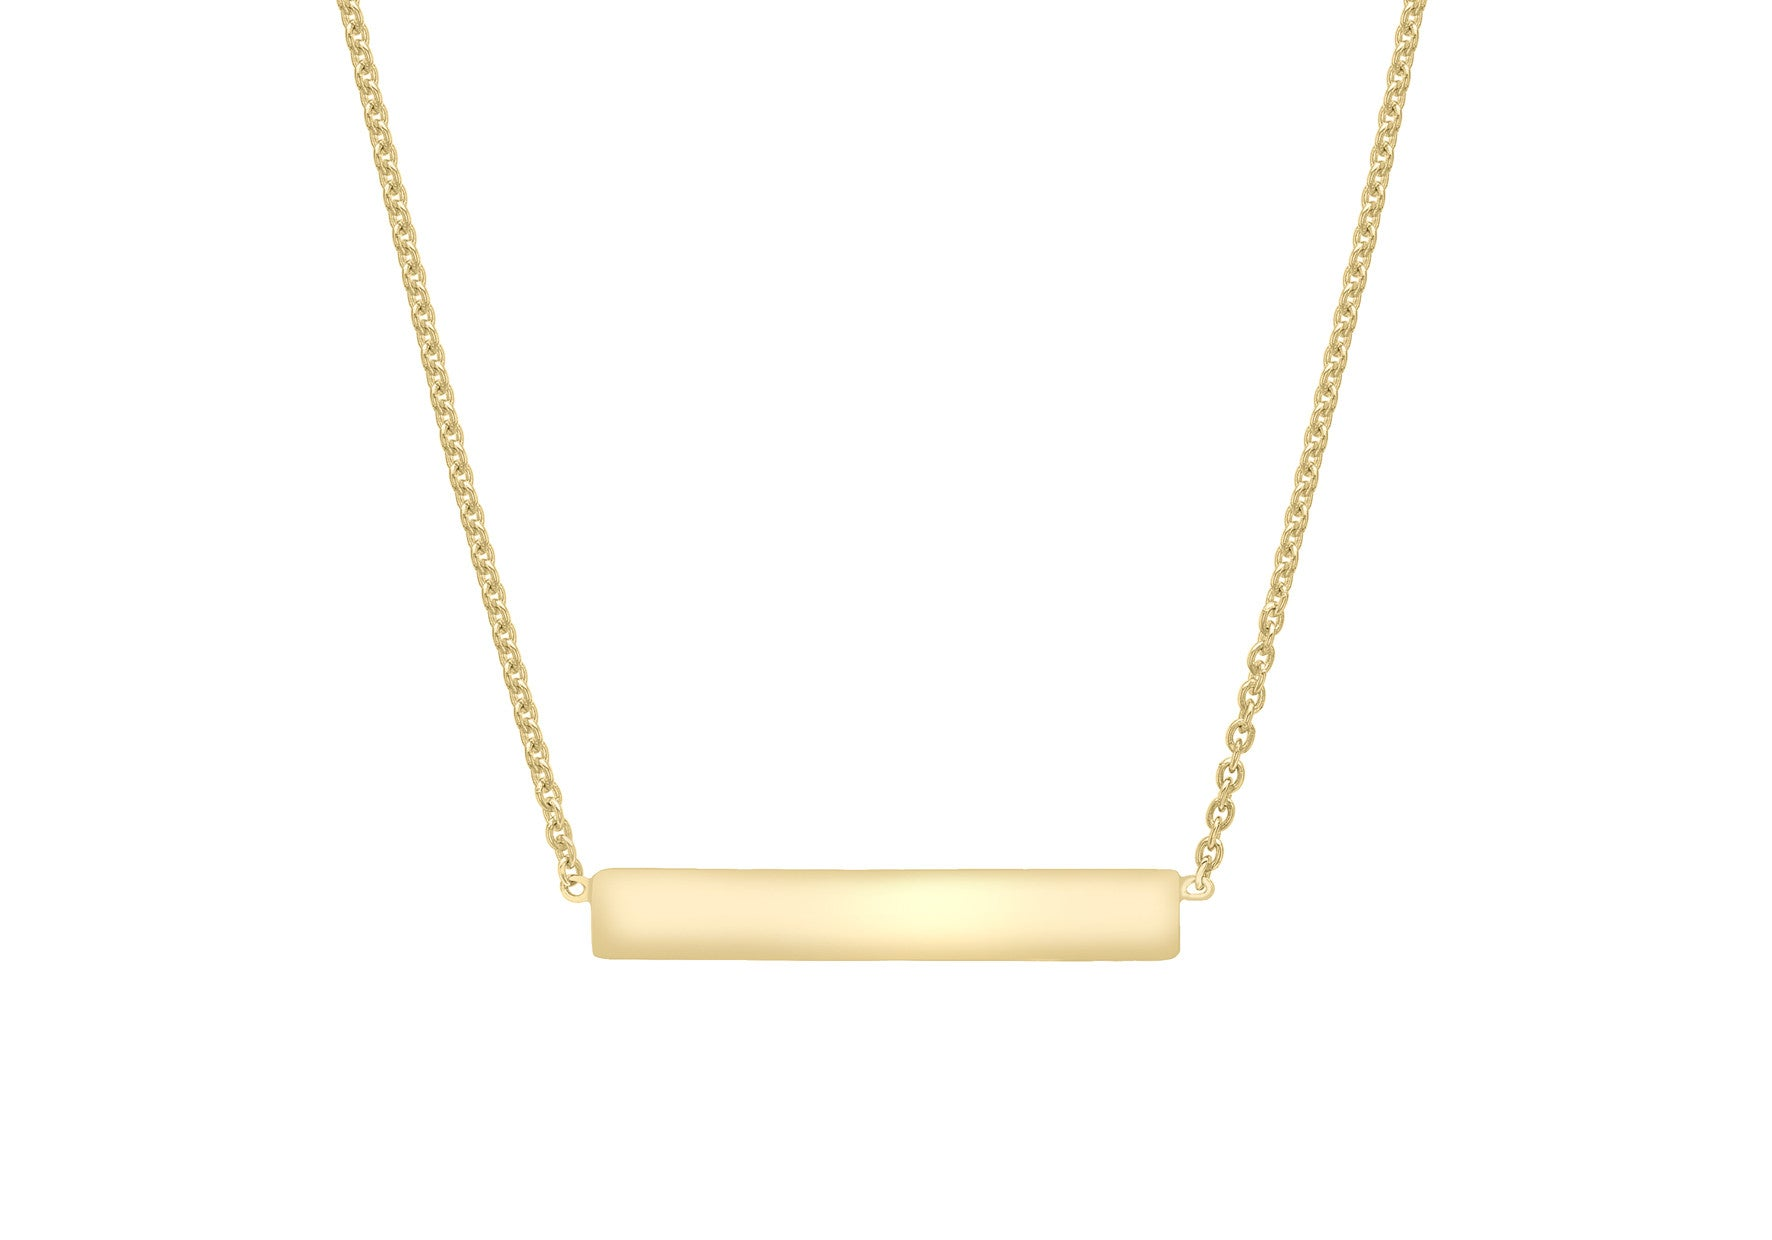 0c43cecbdf2 Buy 9ct Yellow Gold Bar Necklace at Tzefira for only £120.00